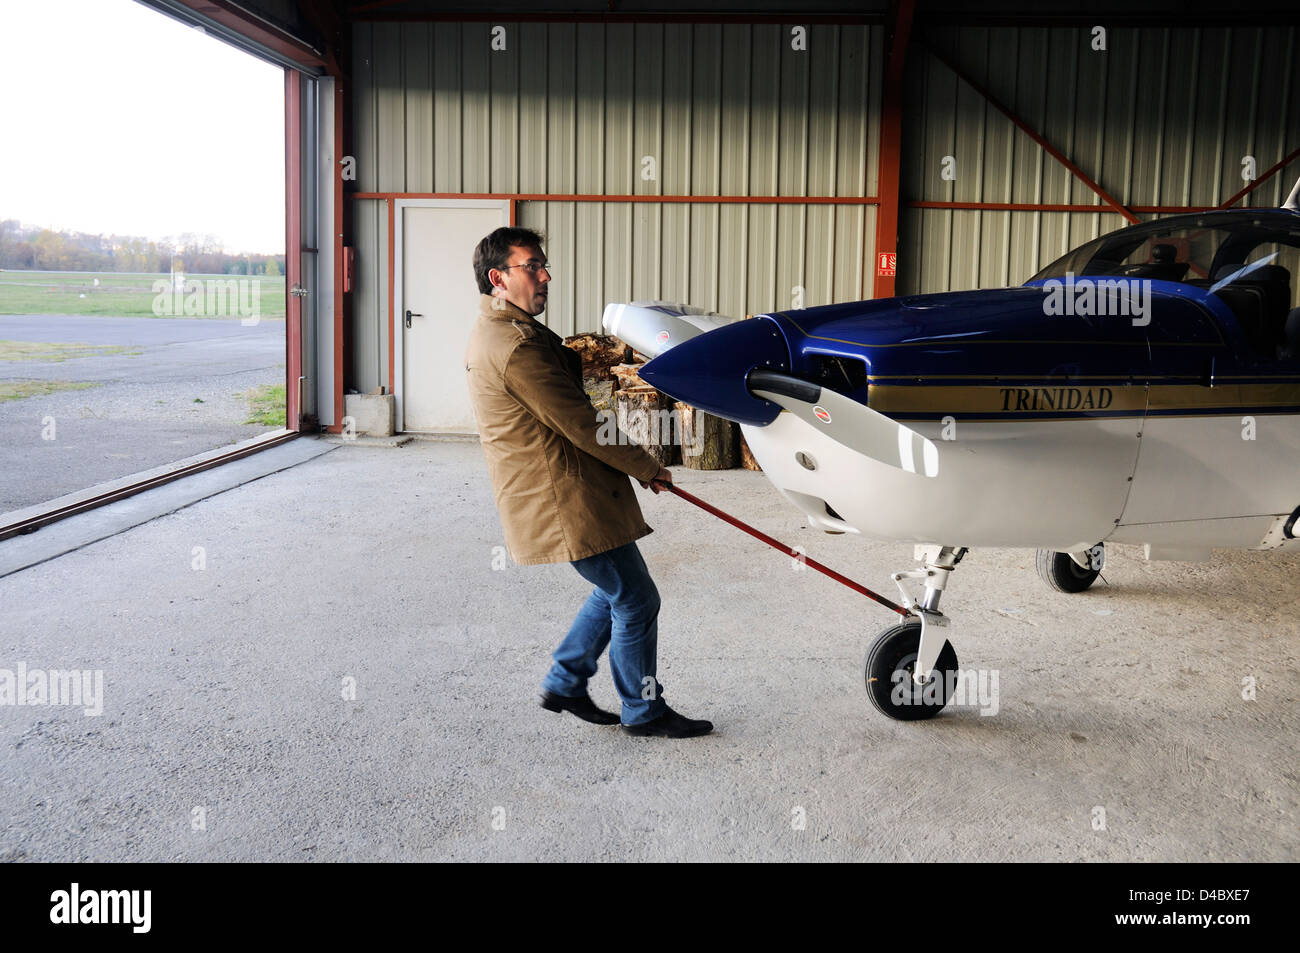 A pilot pulling his light plane out of its hangar Stock Photo